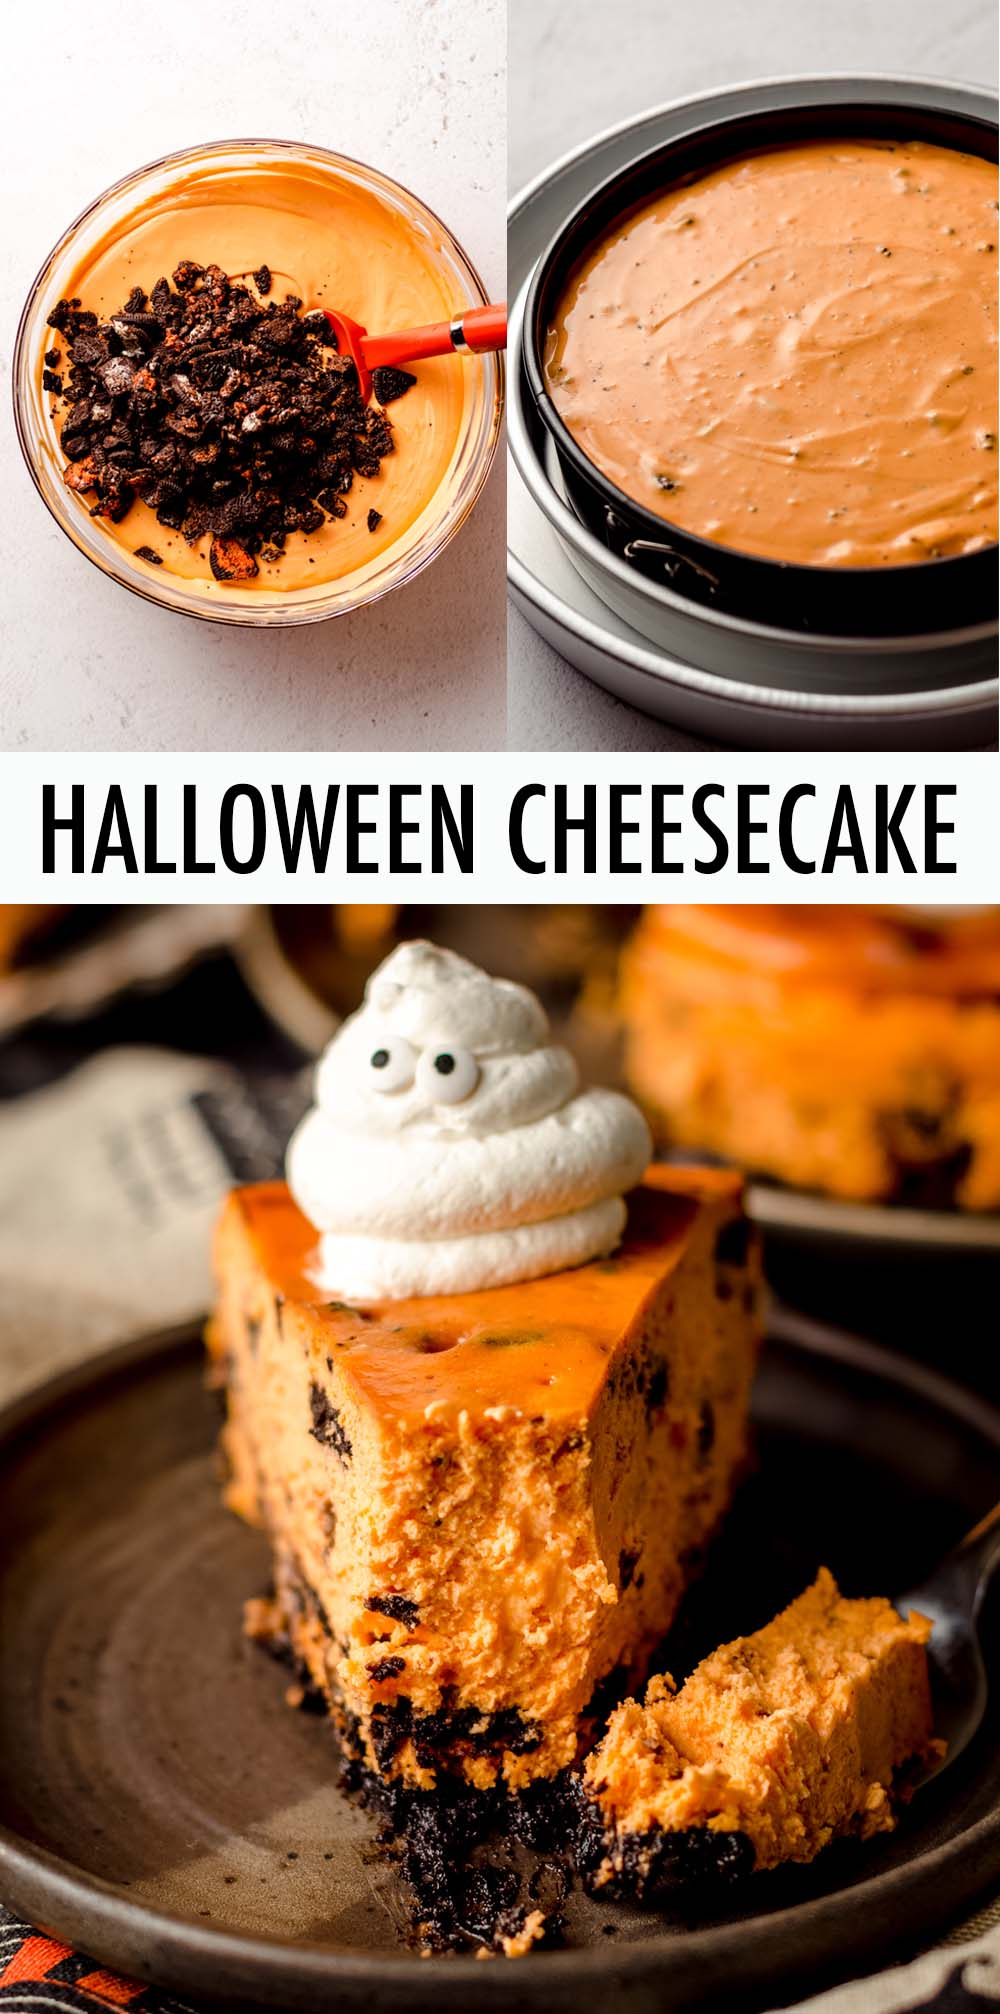 A basic cookies and cream cheesecake tinted orange and filled with chunks of Halloween Oreos, sitting atop a Halloween Oreo crust. Top with adorable whipped cream ghosts for a spooky treat, or use classic Oreos and leave out the orange coloring for a luscious cheesecake variation all year round!